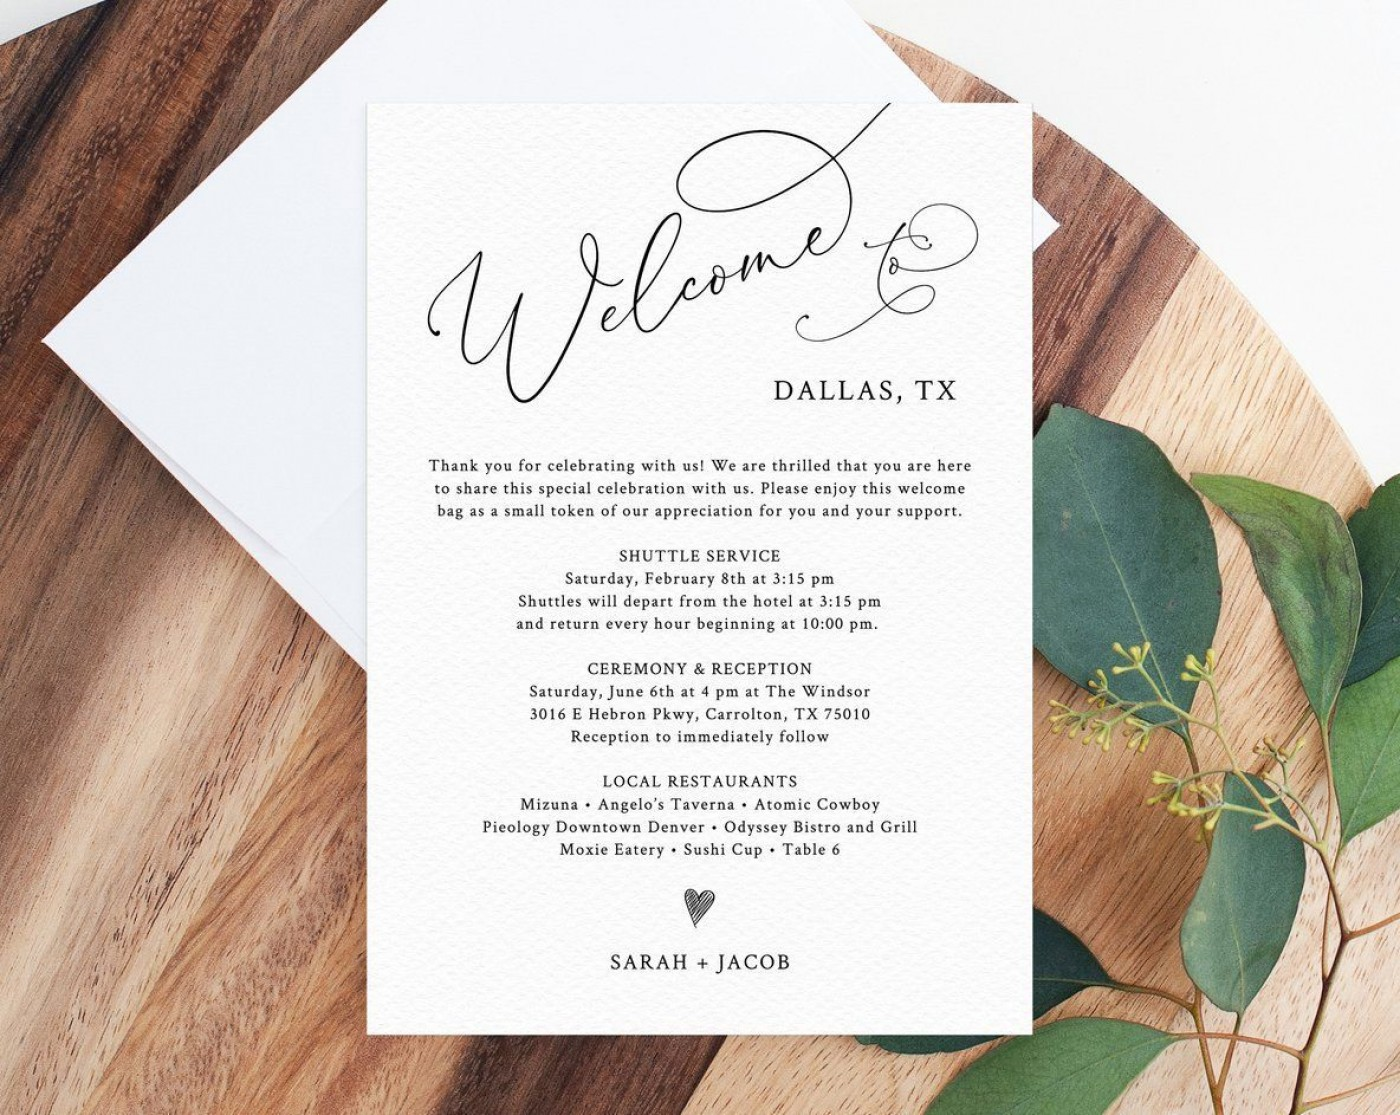 004 Striking Wedding Hotel Welcome Letter Template Photo 1400